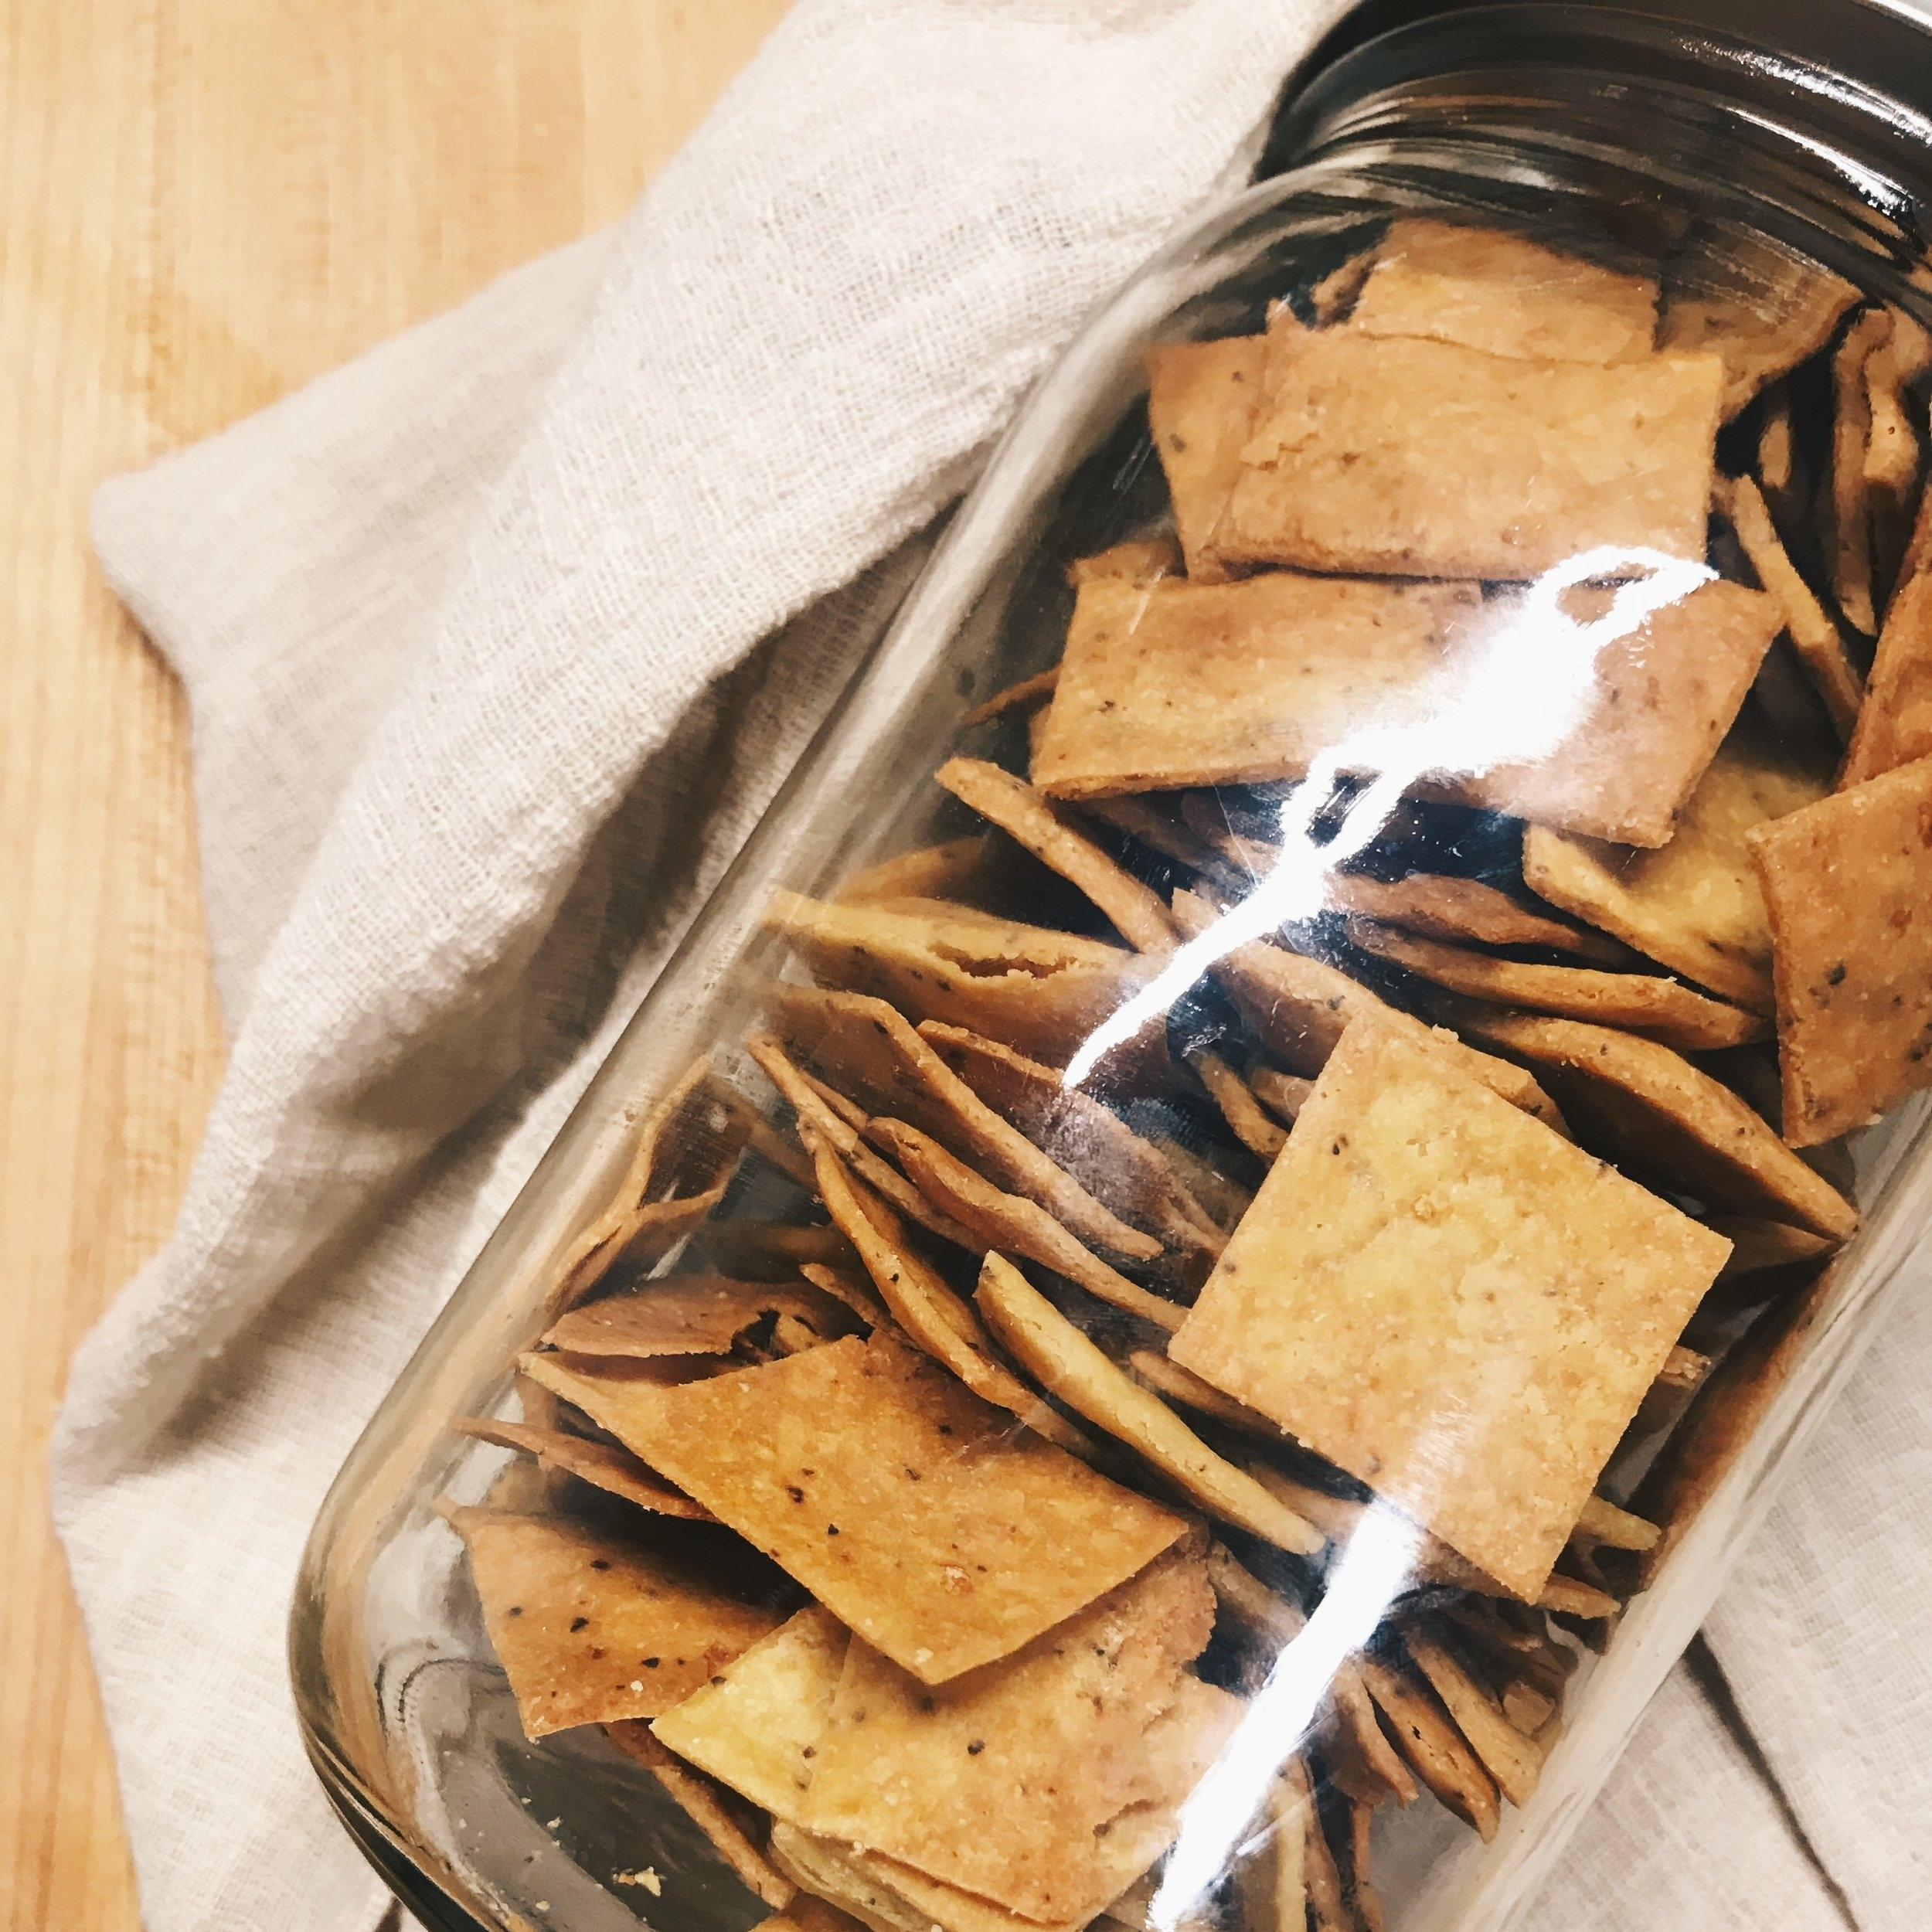 """Chickpea Crackers   Free of: Gluten, Soy, Dairy, Eggs, Corn and nuts!! YEA! SO easy and definitely a snack thats ALWAYS in my kitchen ready to munch on! NOTE: I double the nutritional yeast amount to make them more like a """"Cheez-It."""" Still mild, but oh so tasty!   RECIPE    HERE   !"""